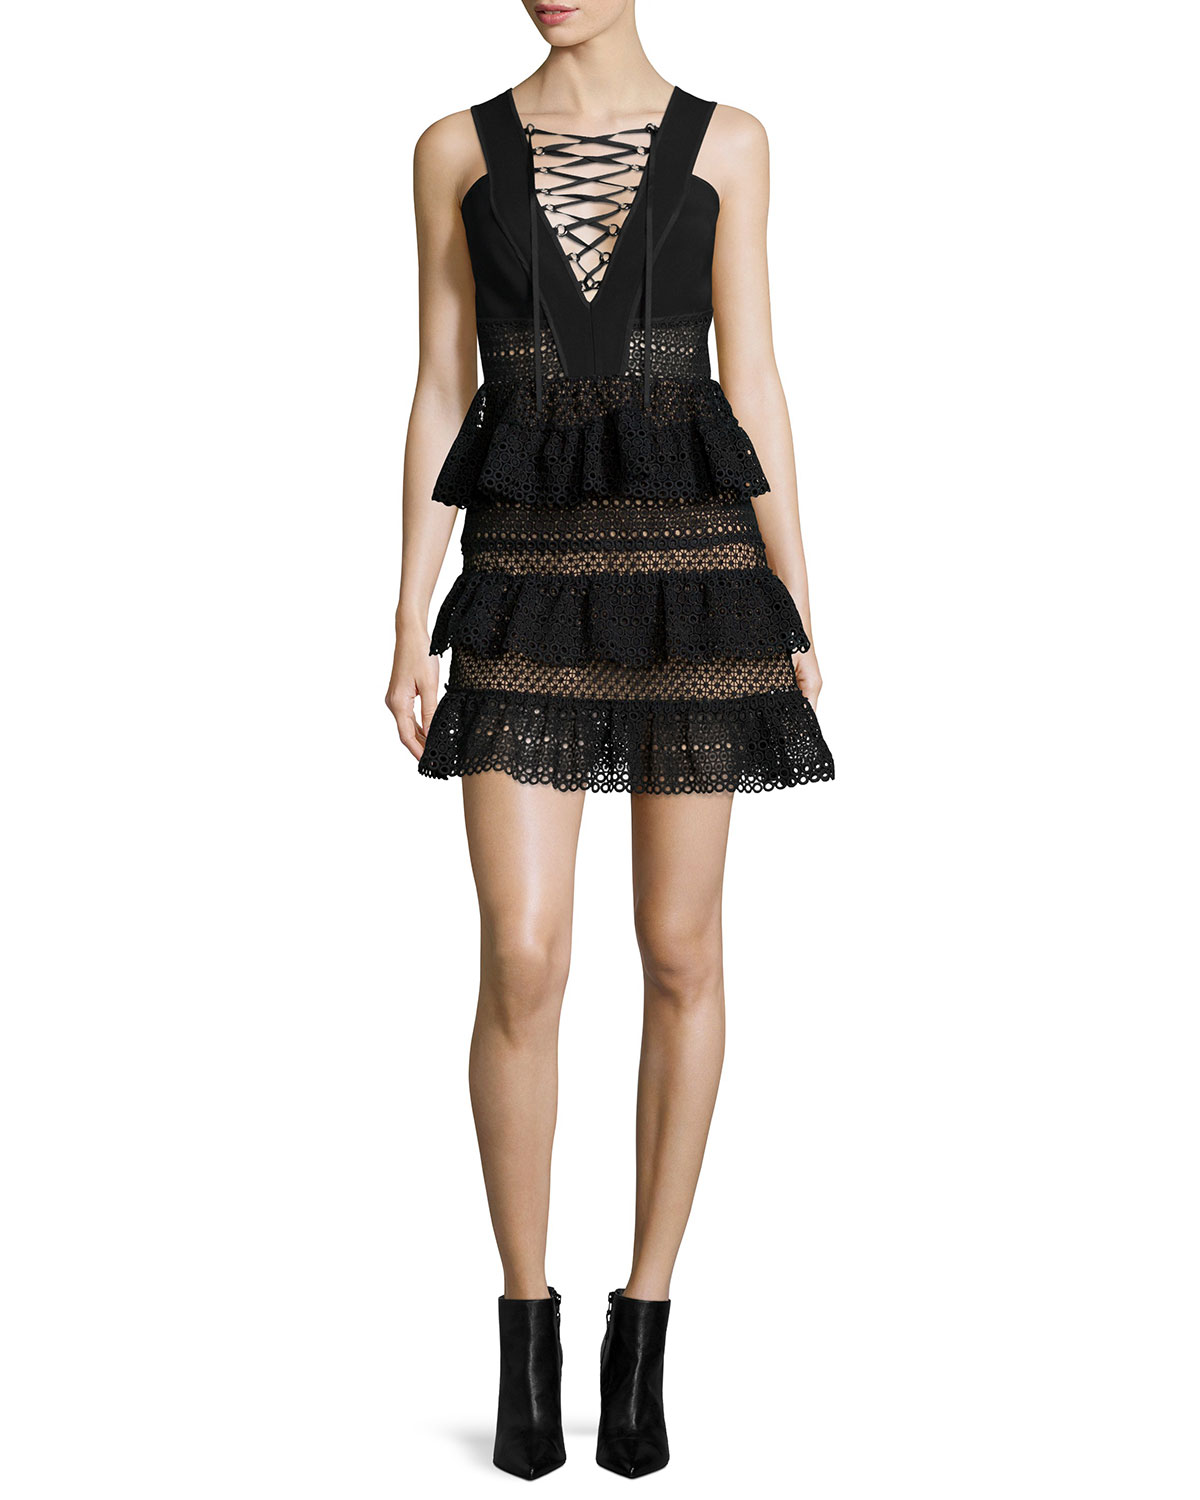 Self Portrait Sleeveless Tiered Lace-Front Dress, Black, Size: 2